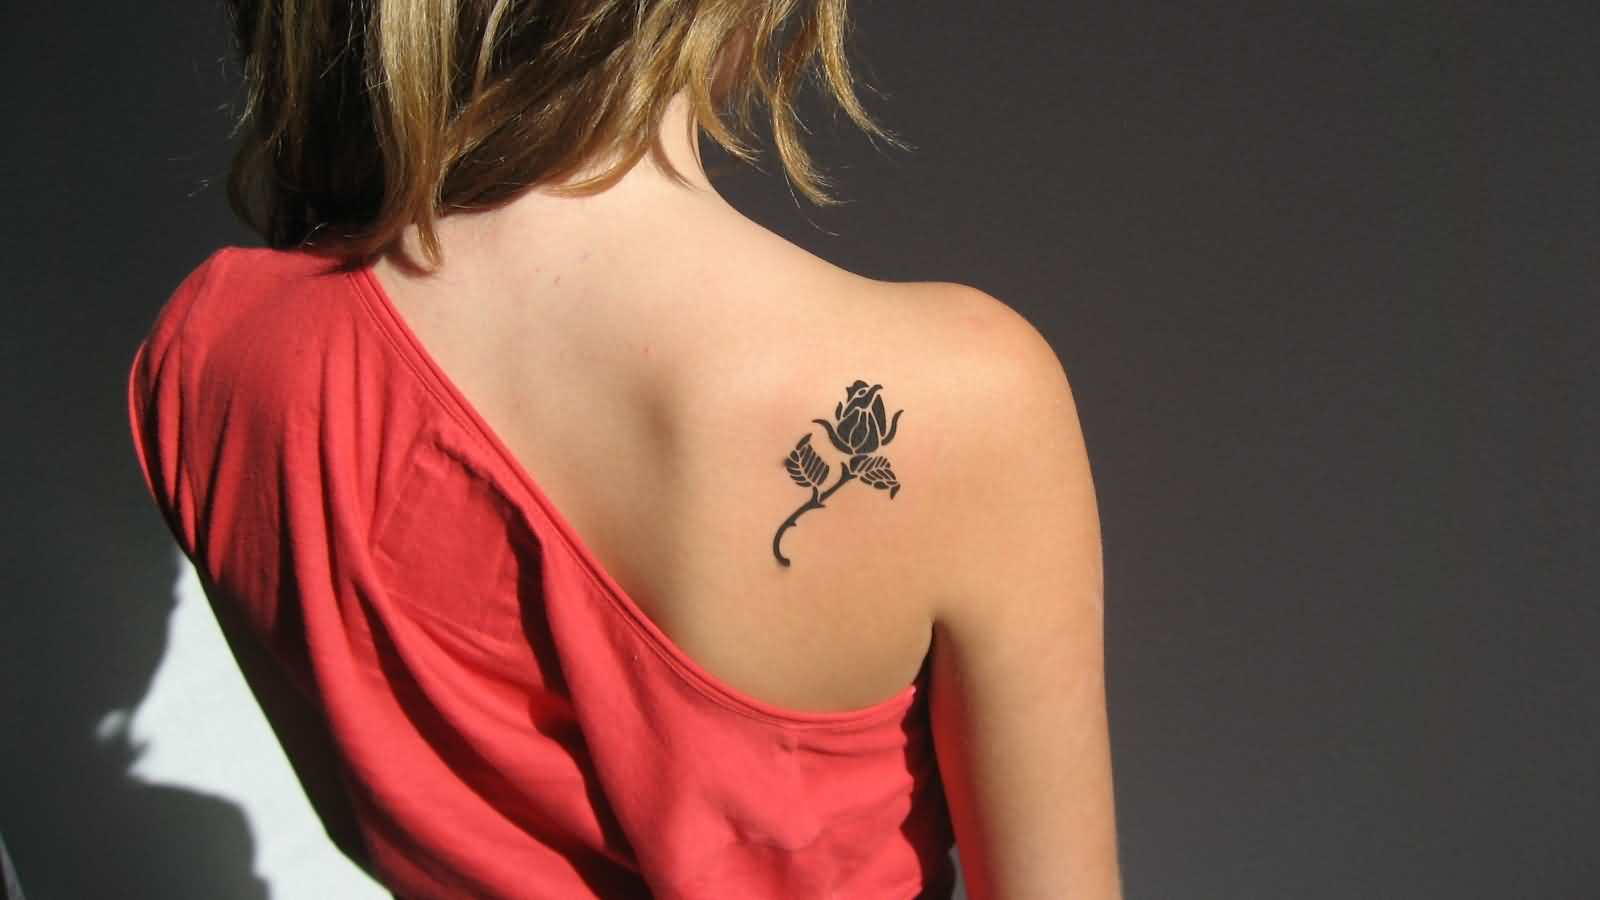 New Style Rose Tattoo Behind Shoulder